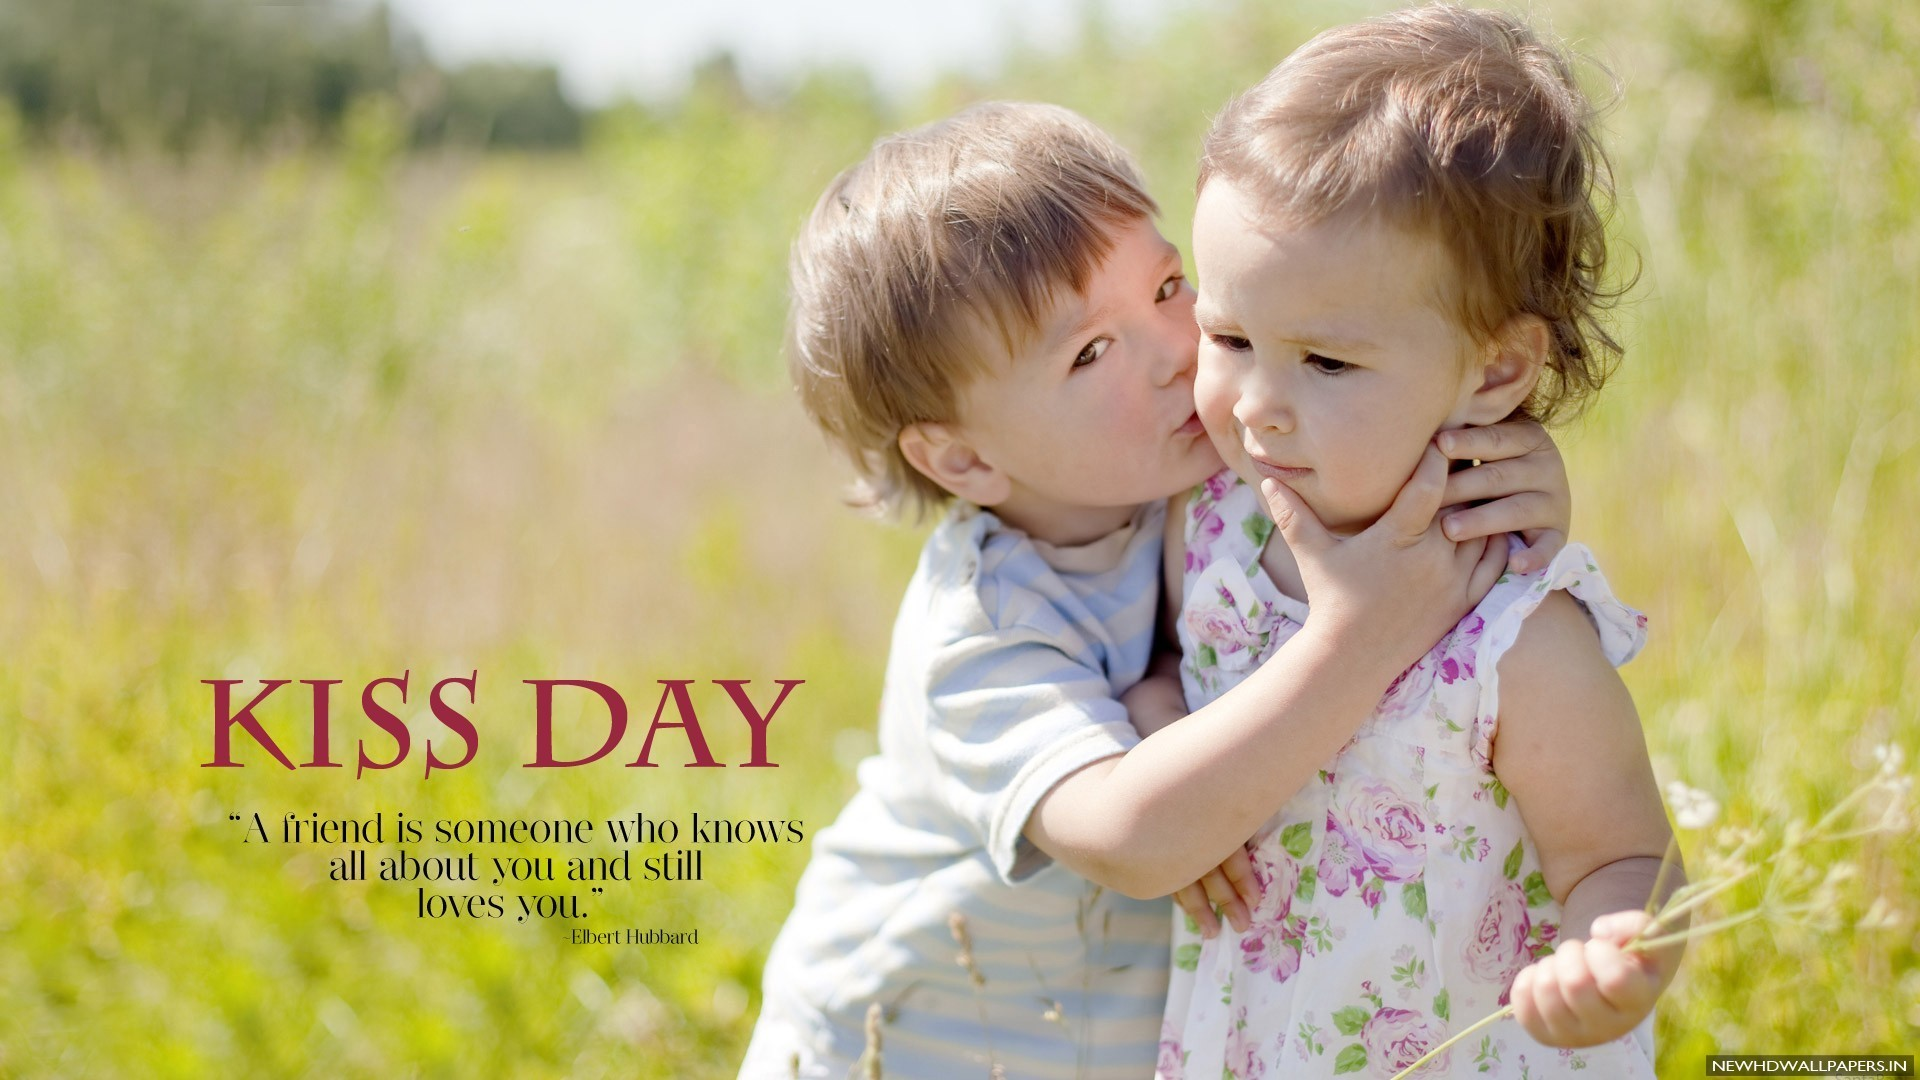 Cute Boy Kissing Baby Girl Photo 2016 · Download Free Wide HD .